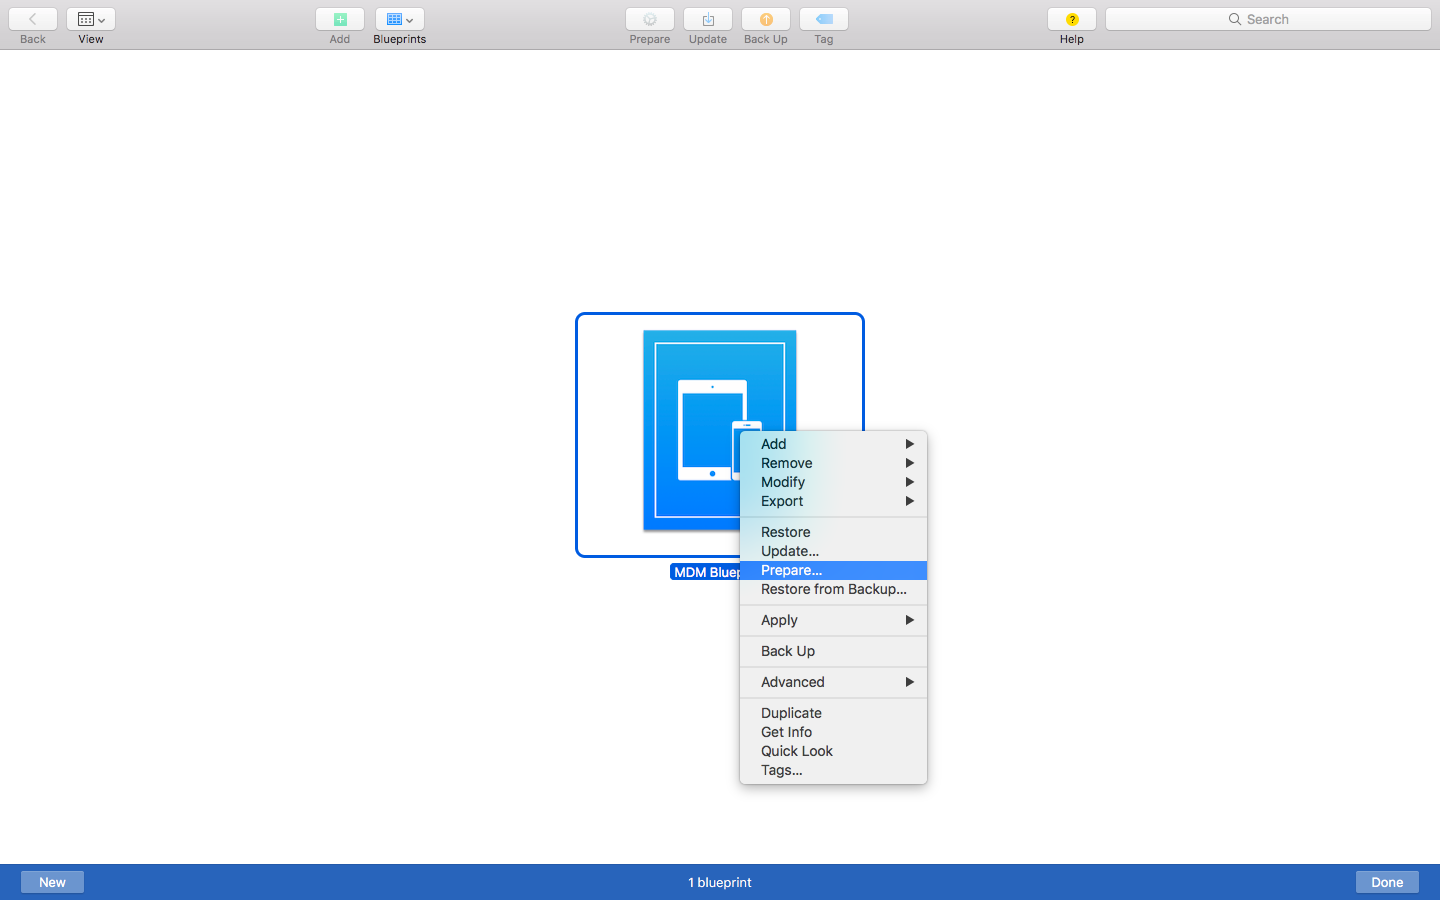 Preparing the Blueprint on Apple Configurator 2